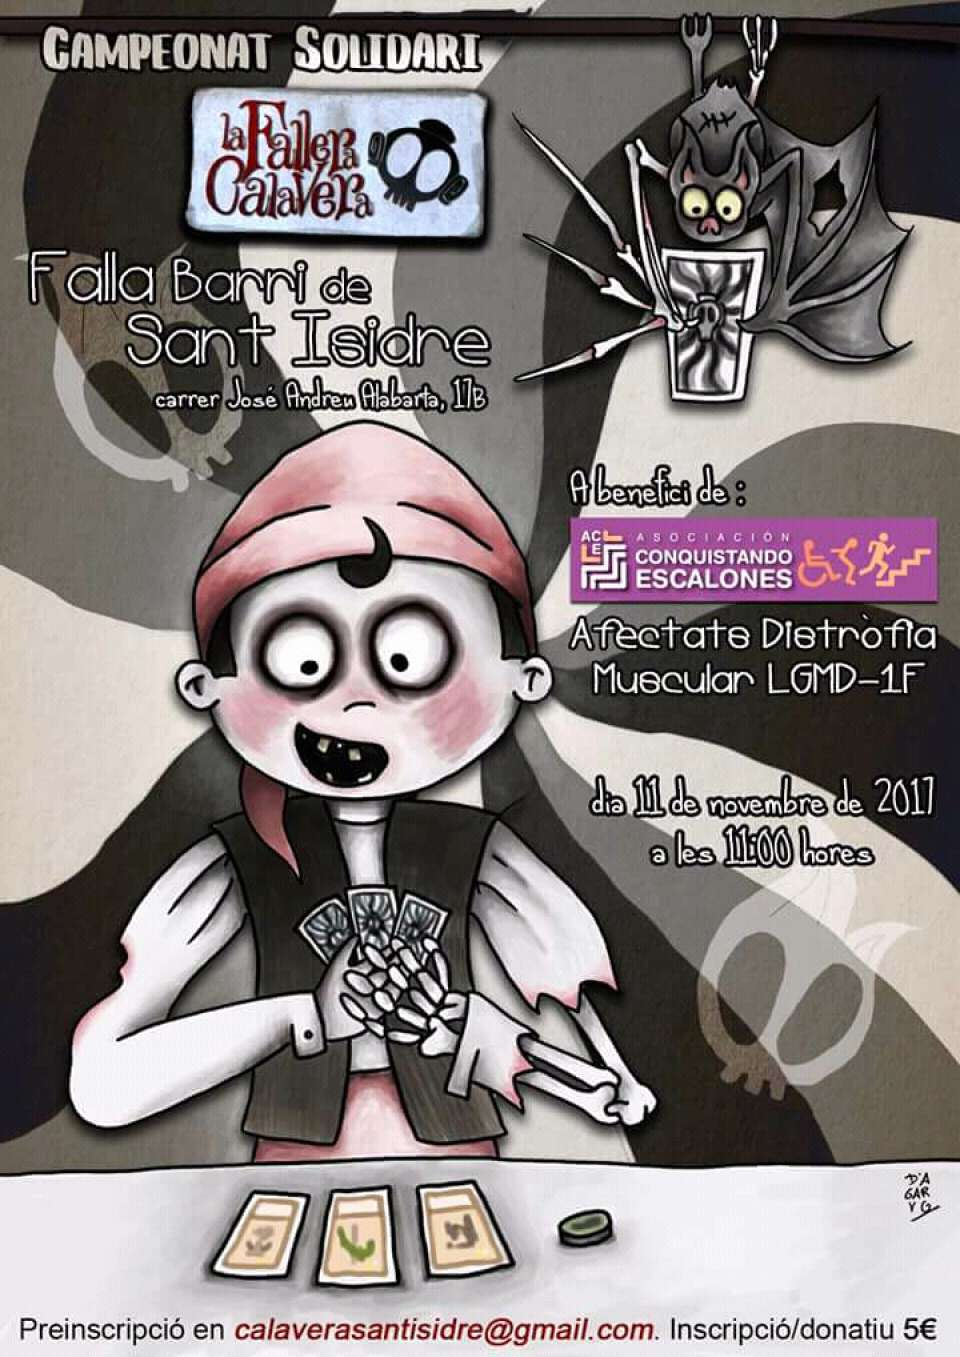 Tournament of Solidarity of The Fallas Skull in Fails San Isidro Valencia 1